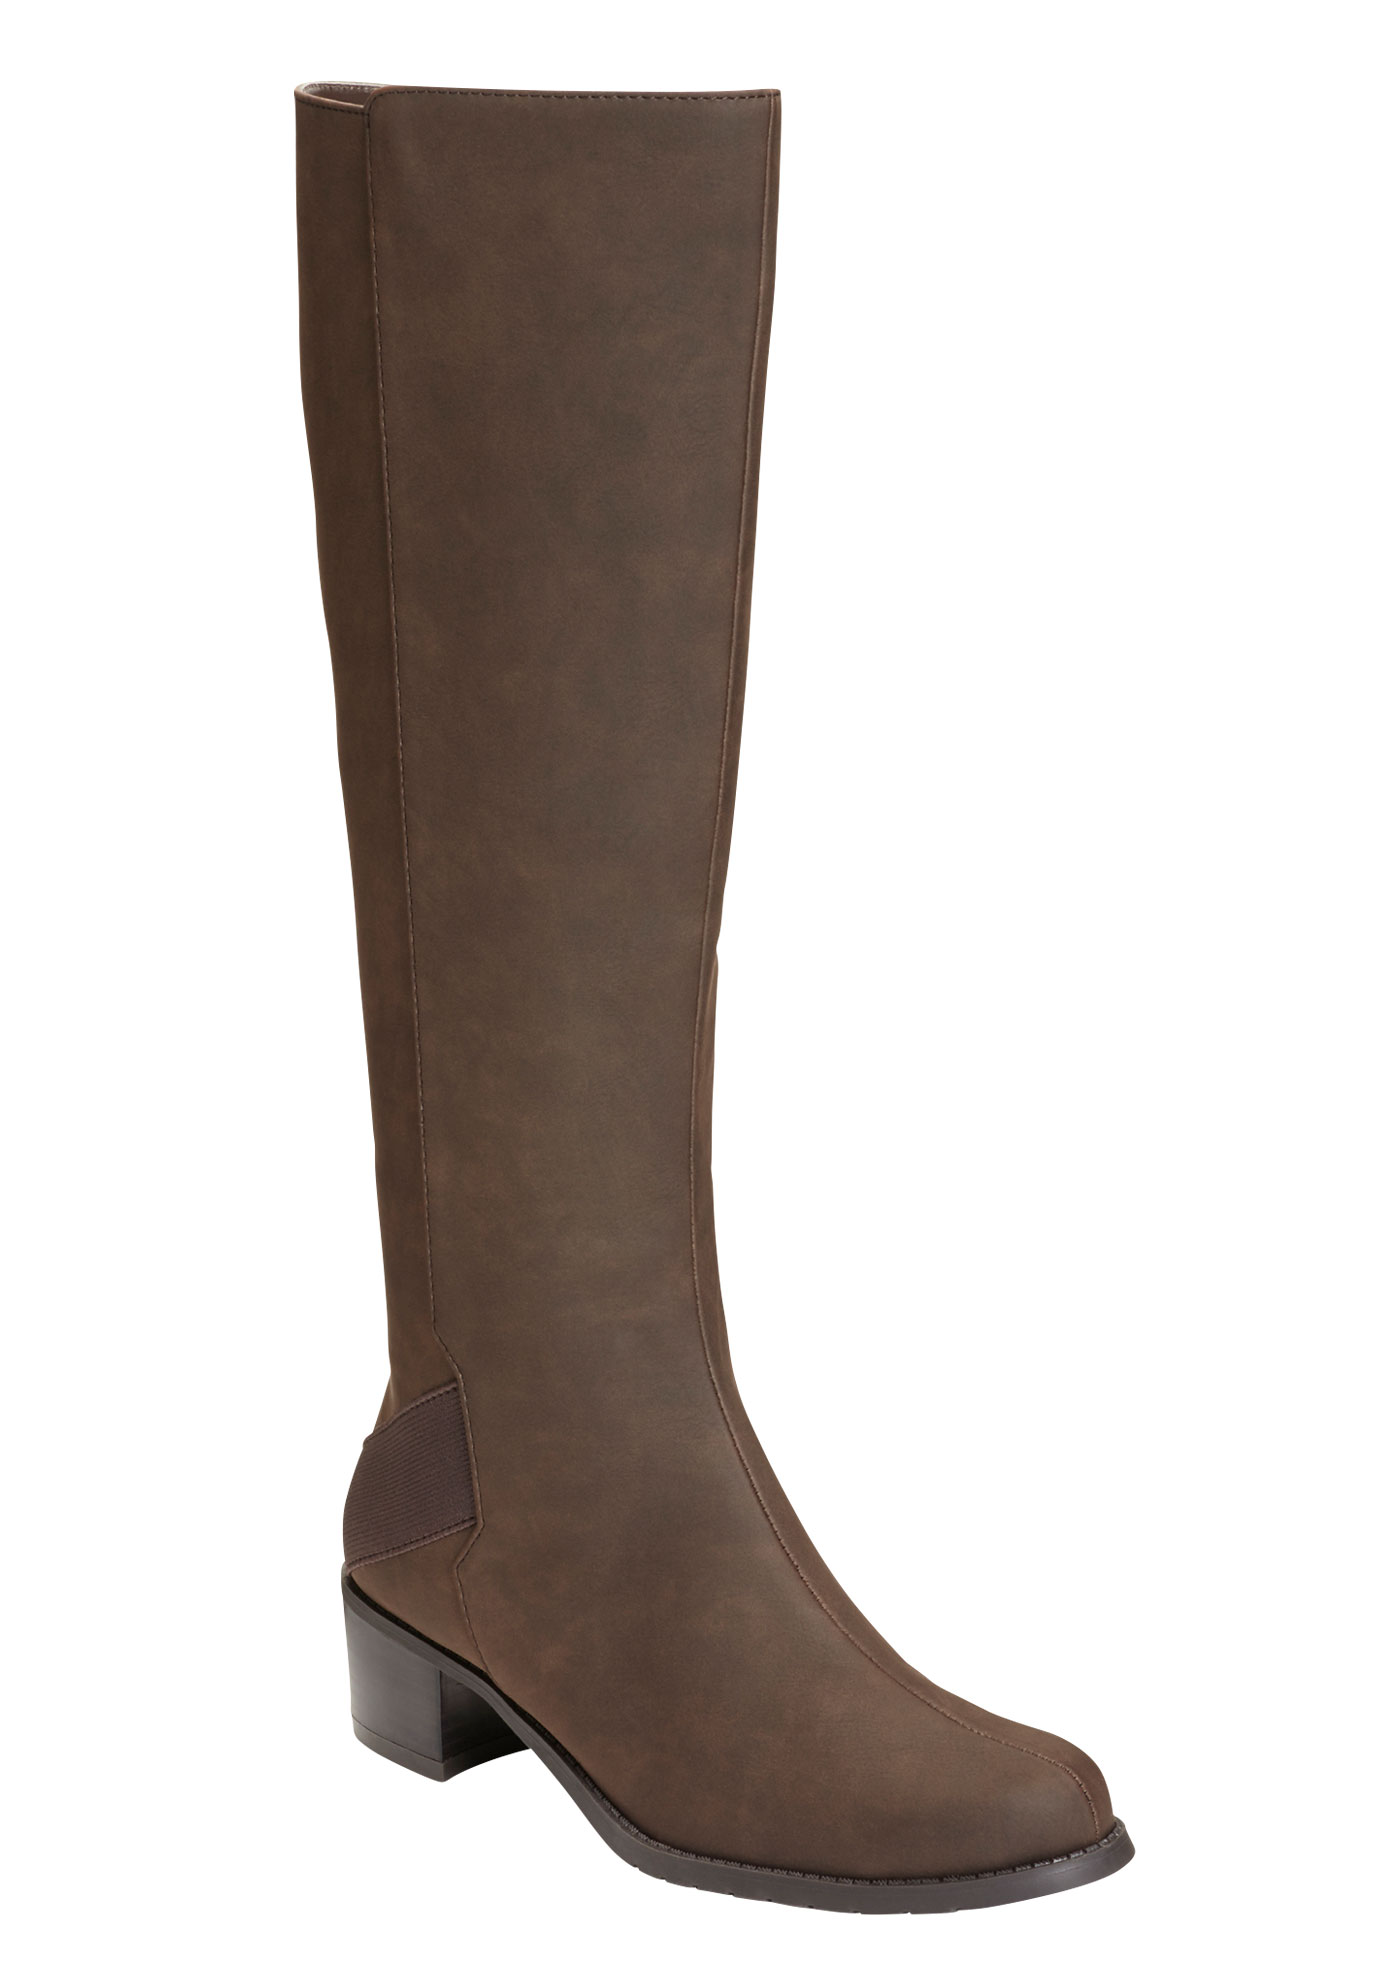 Craftwork Wide Calf Boots by A2 by Aerosoles®, BROWN, hi-res